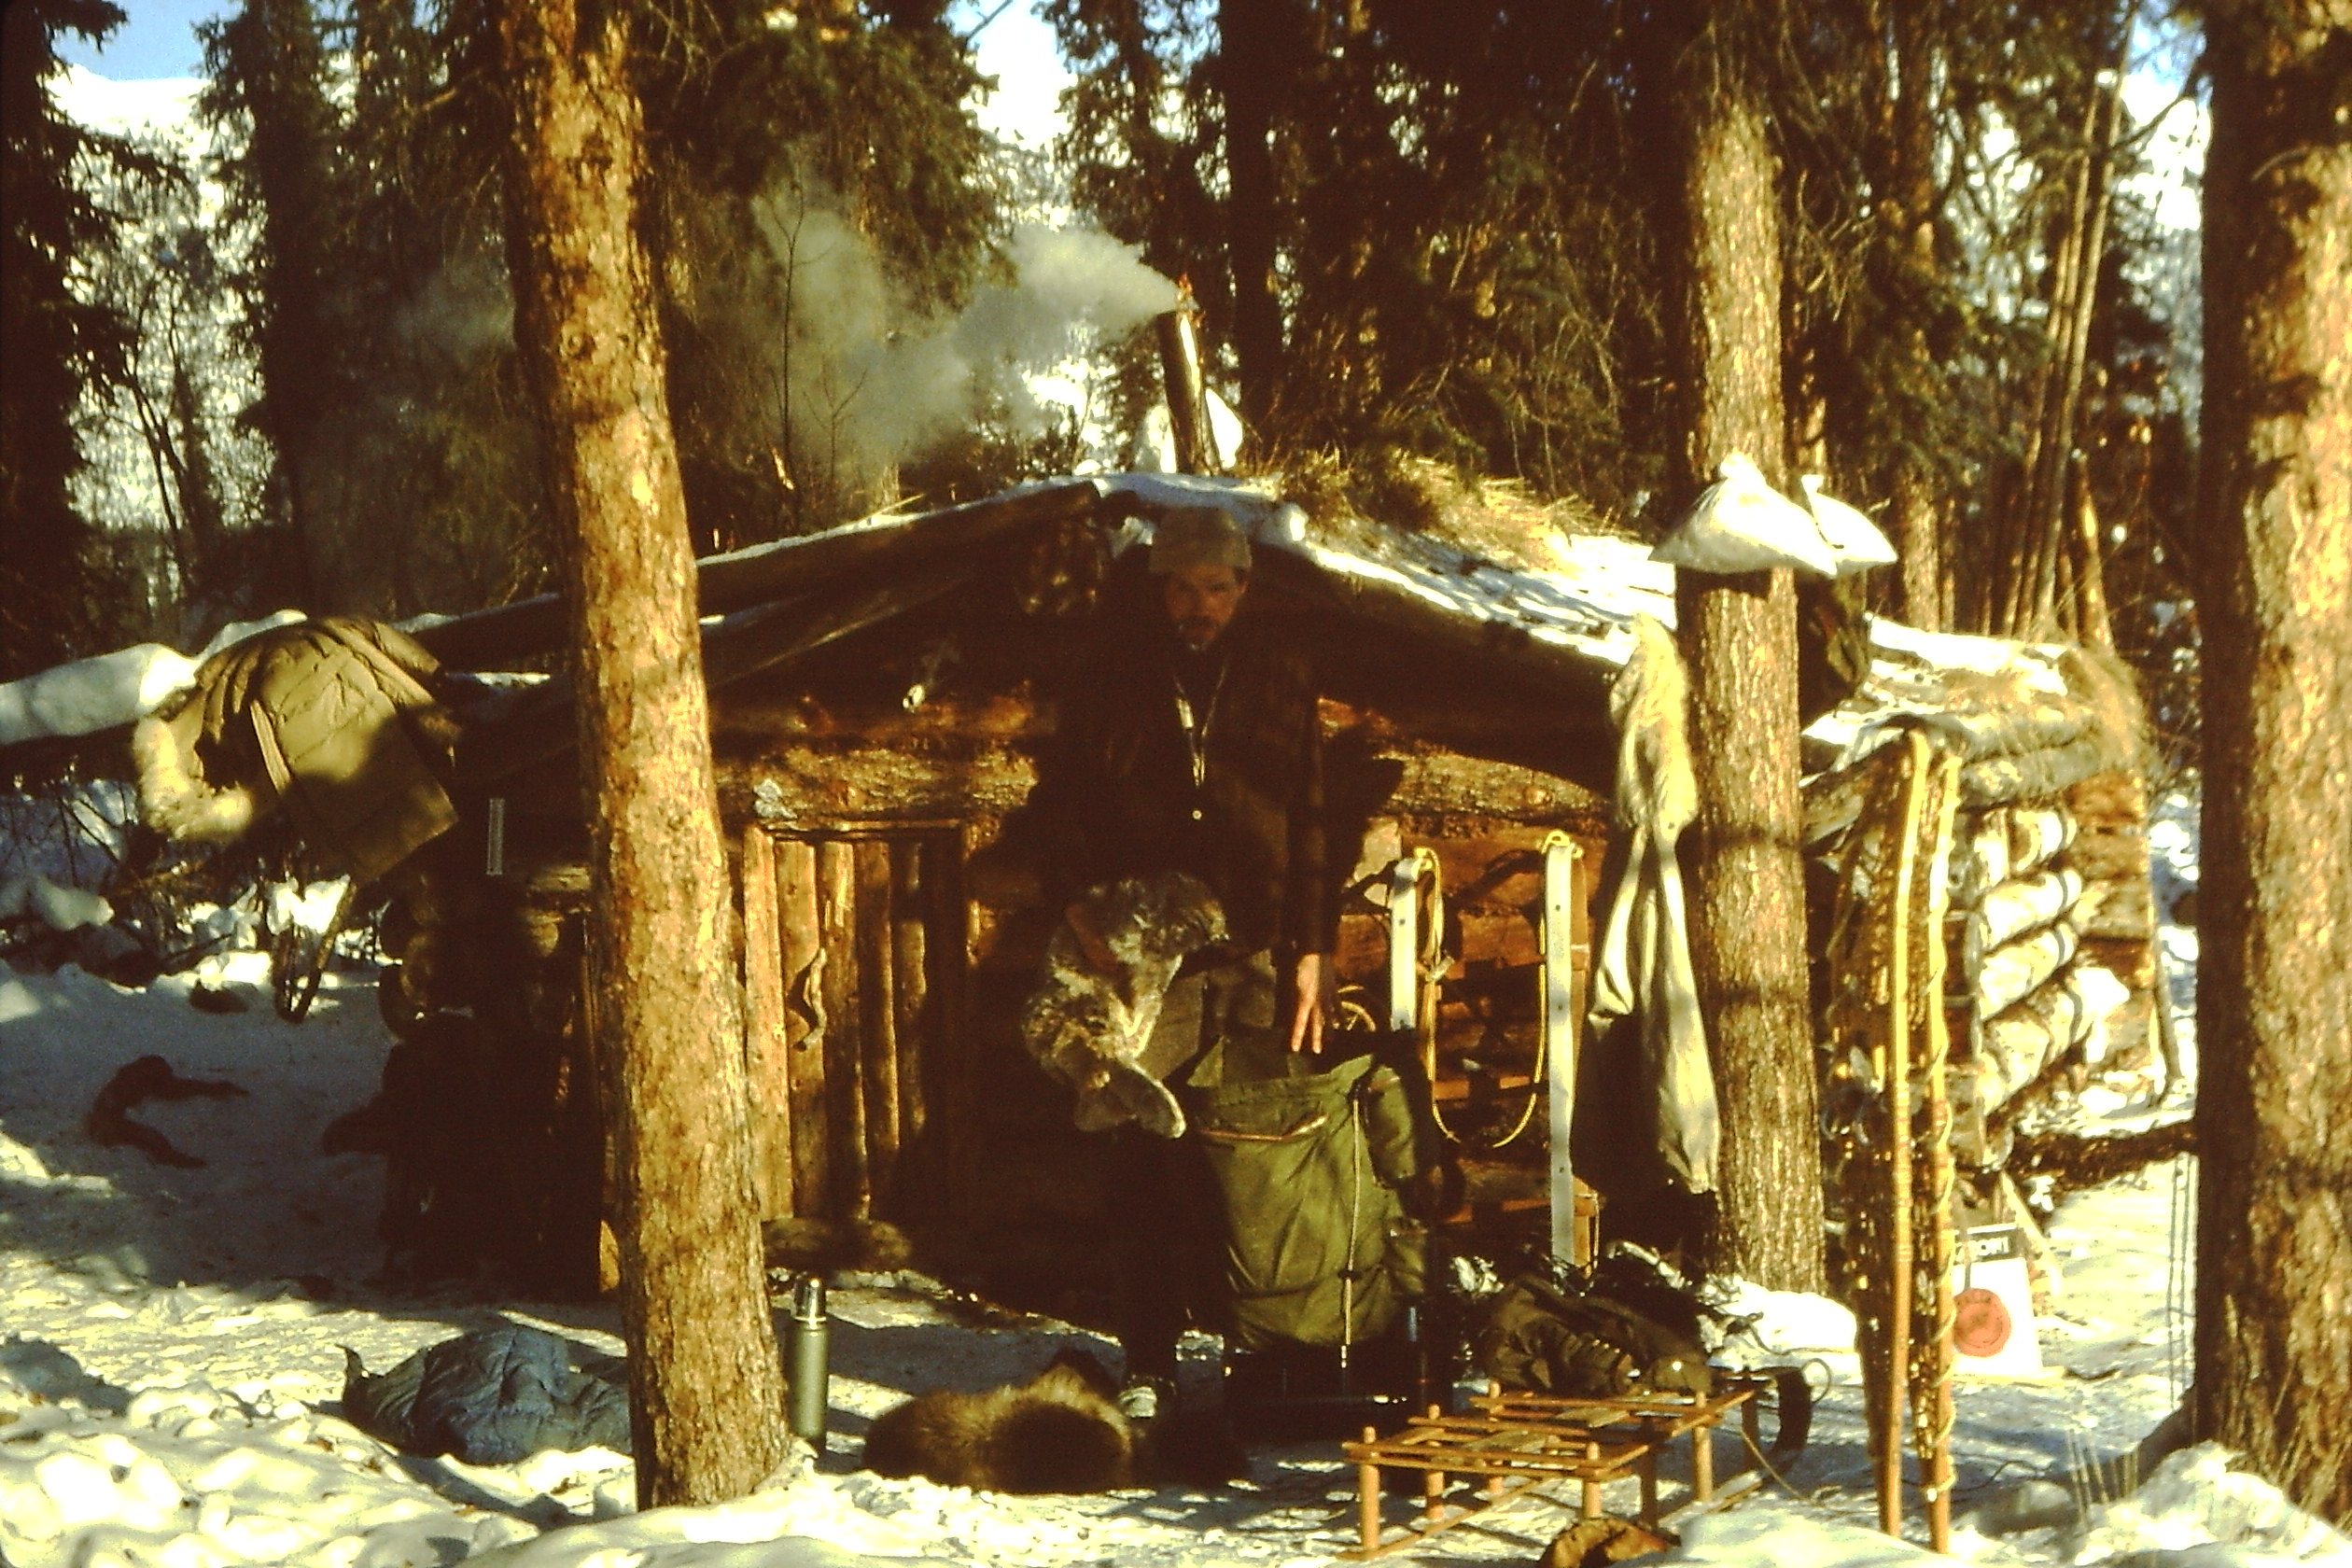 Marvelous photograph of File:Brooks Range (29) Trapper's cabin.jpg Wikimedia Commons with #95A625 color and 2520x1680 pixels